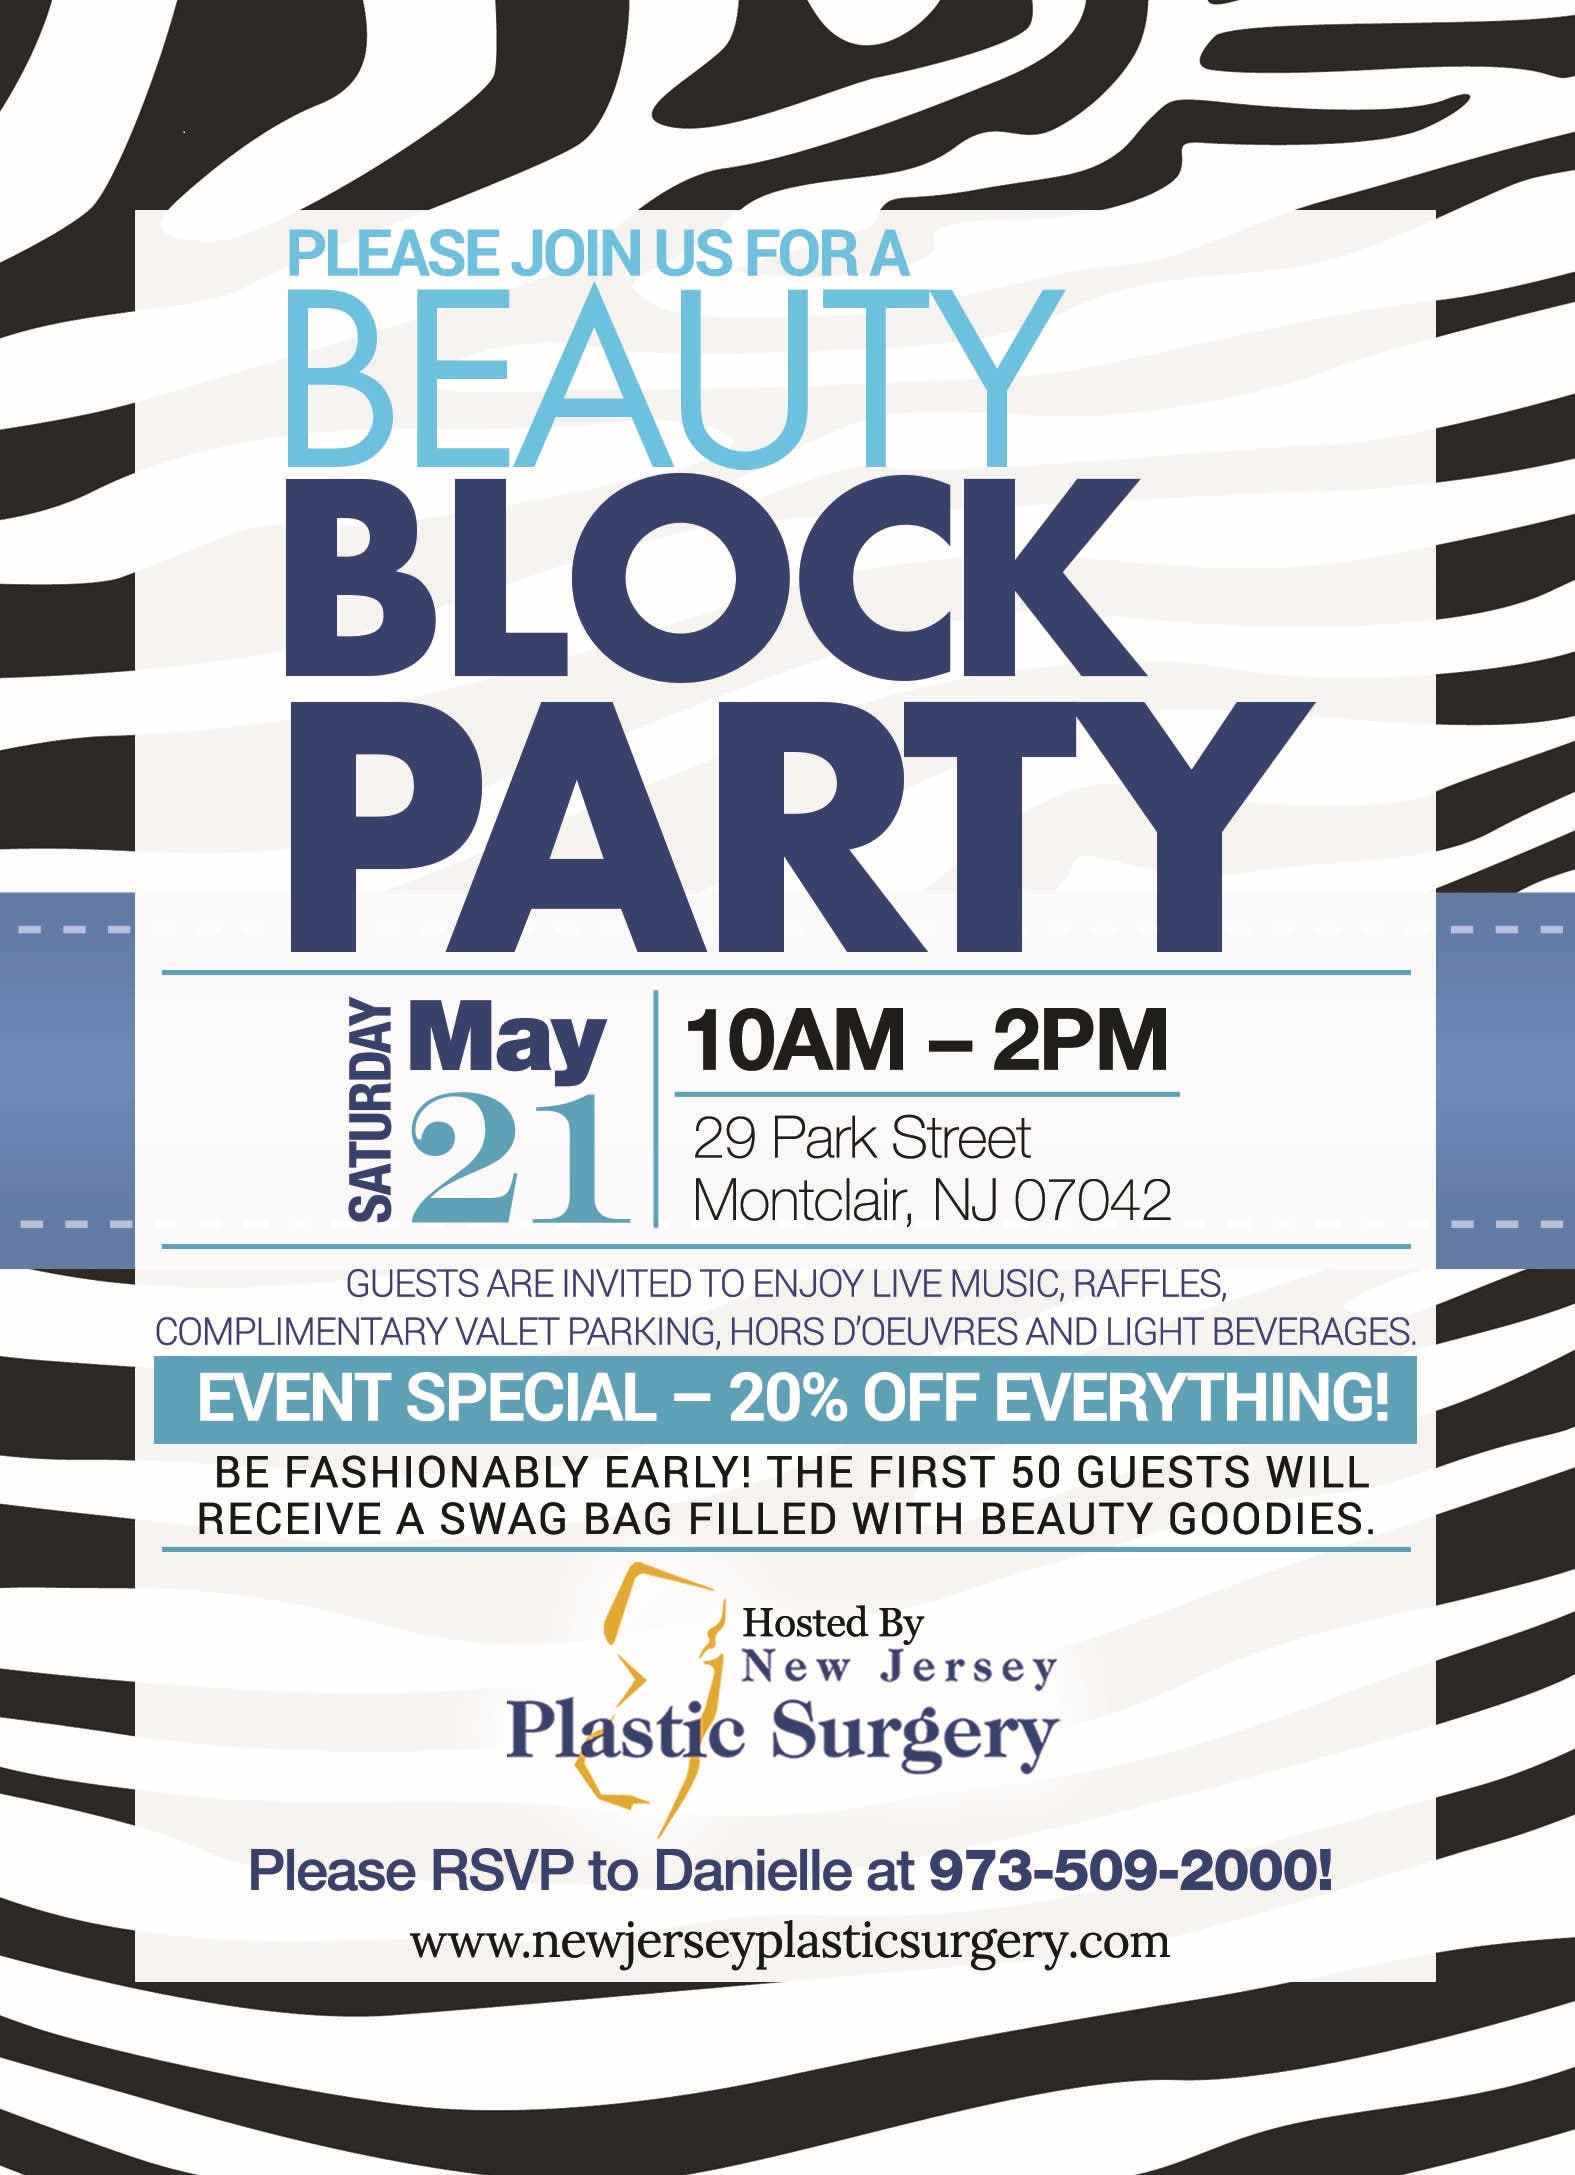 Fun-Filled Block Party Event Focused on Beauty Professionals